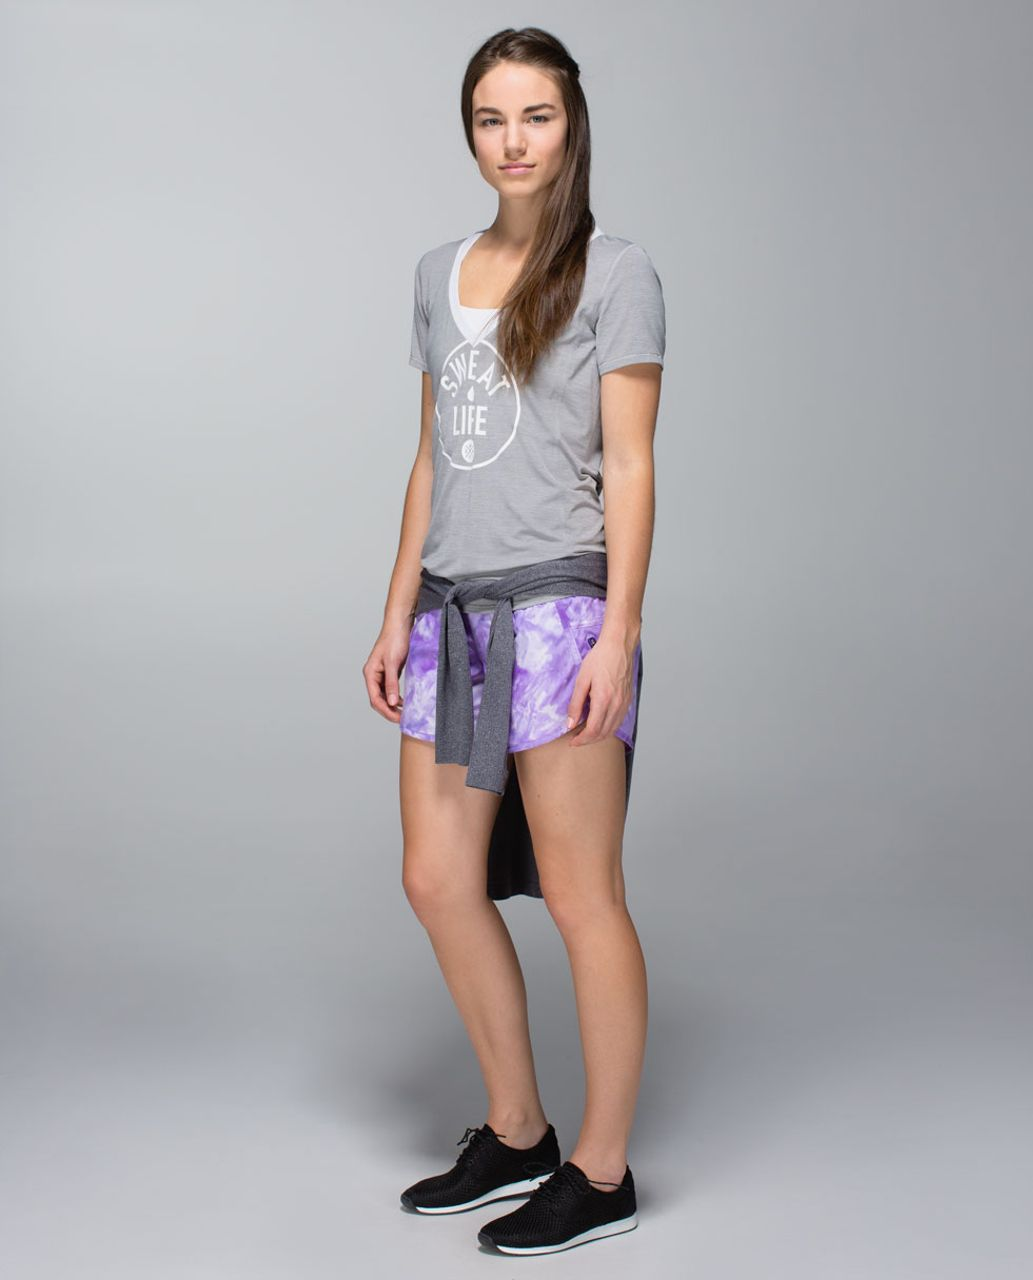 Lululemon Tracker Short II *2-way Stretch - Spray Dye Cool Breeze Bruised Berry / Bruised Berry